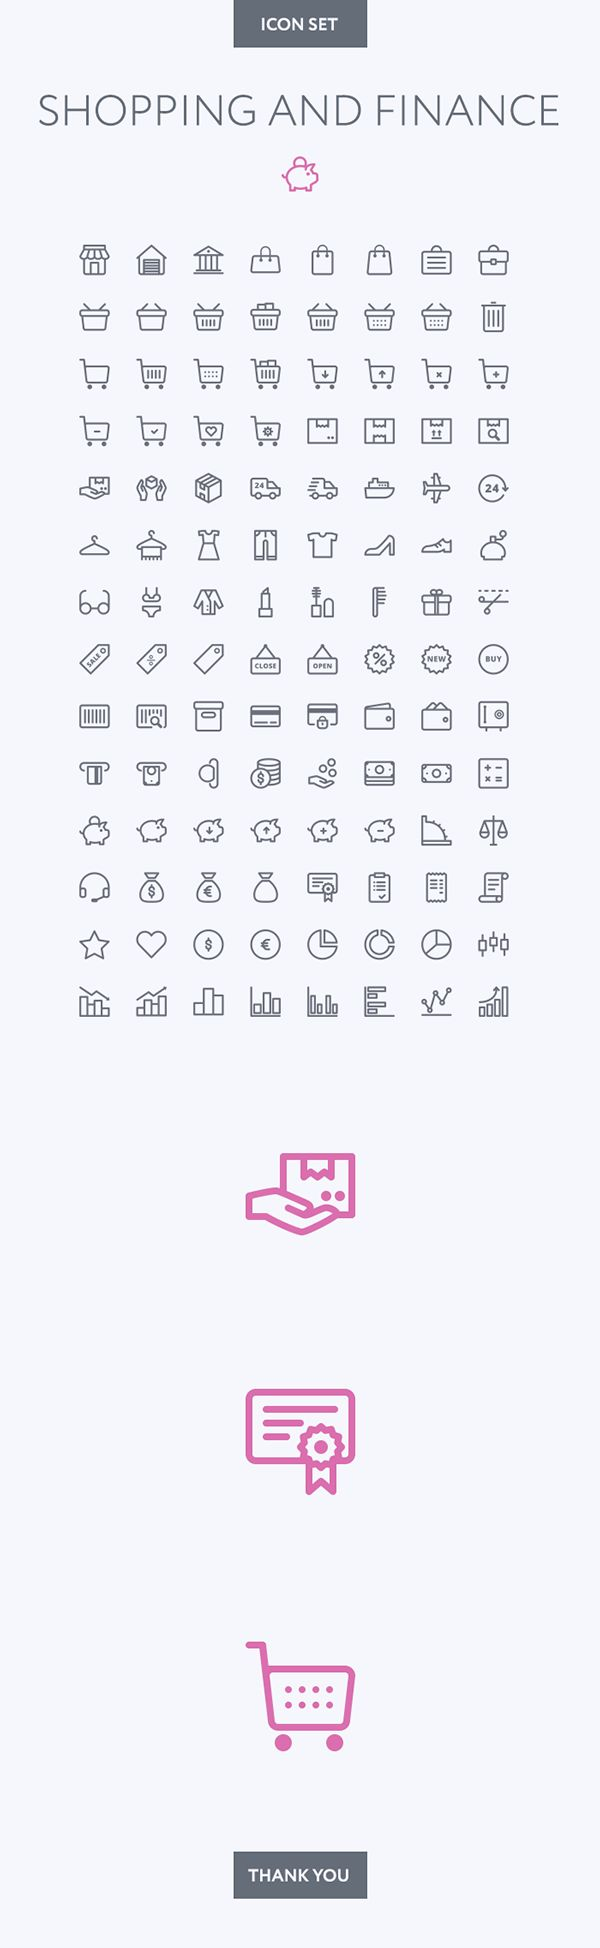 Shopping and Finance icon set on Behance